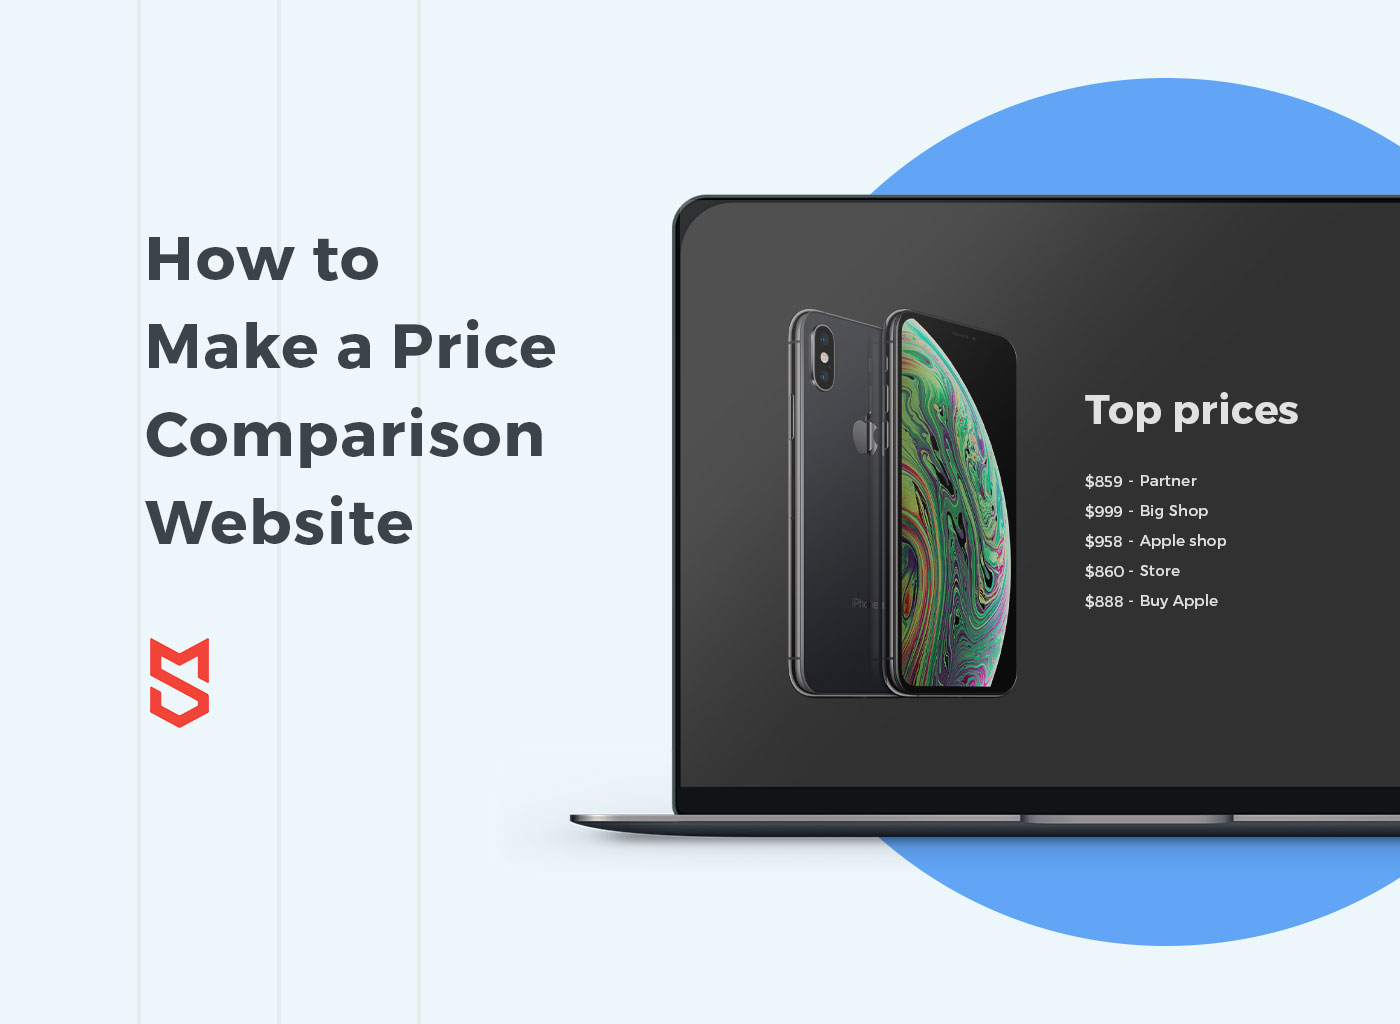 How to Make a Price Comparison Website